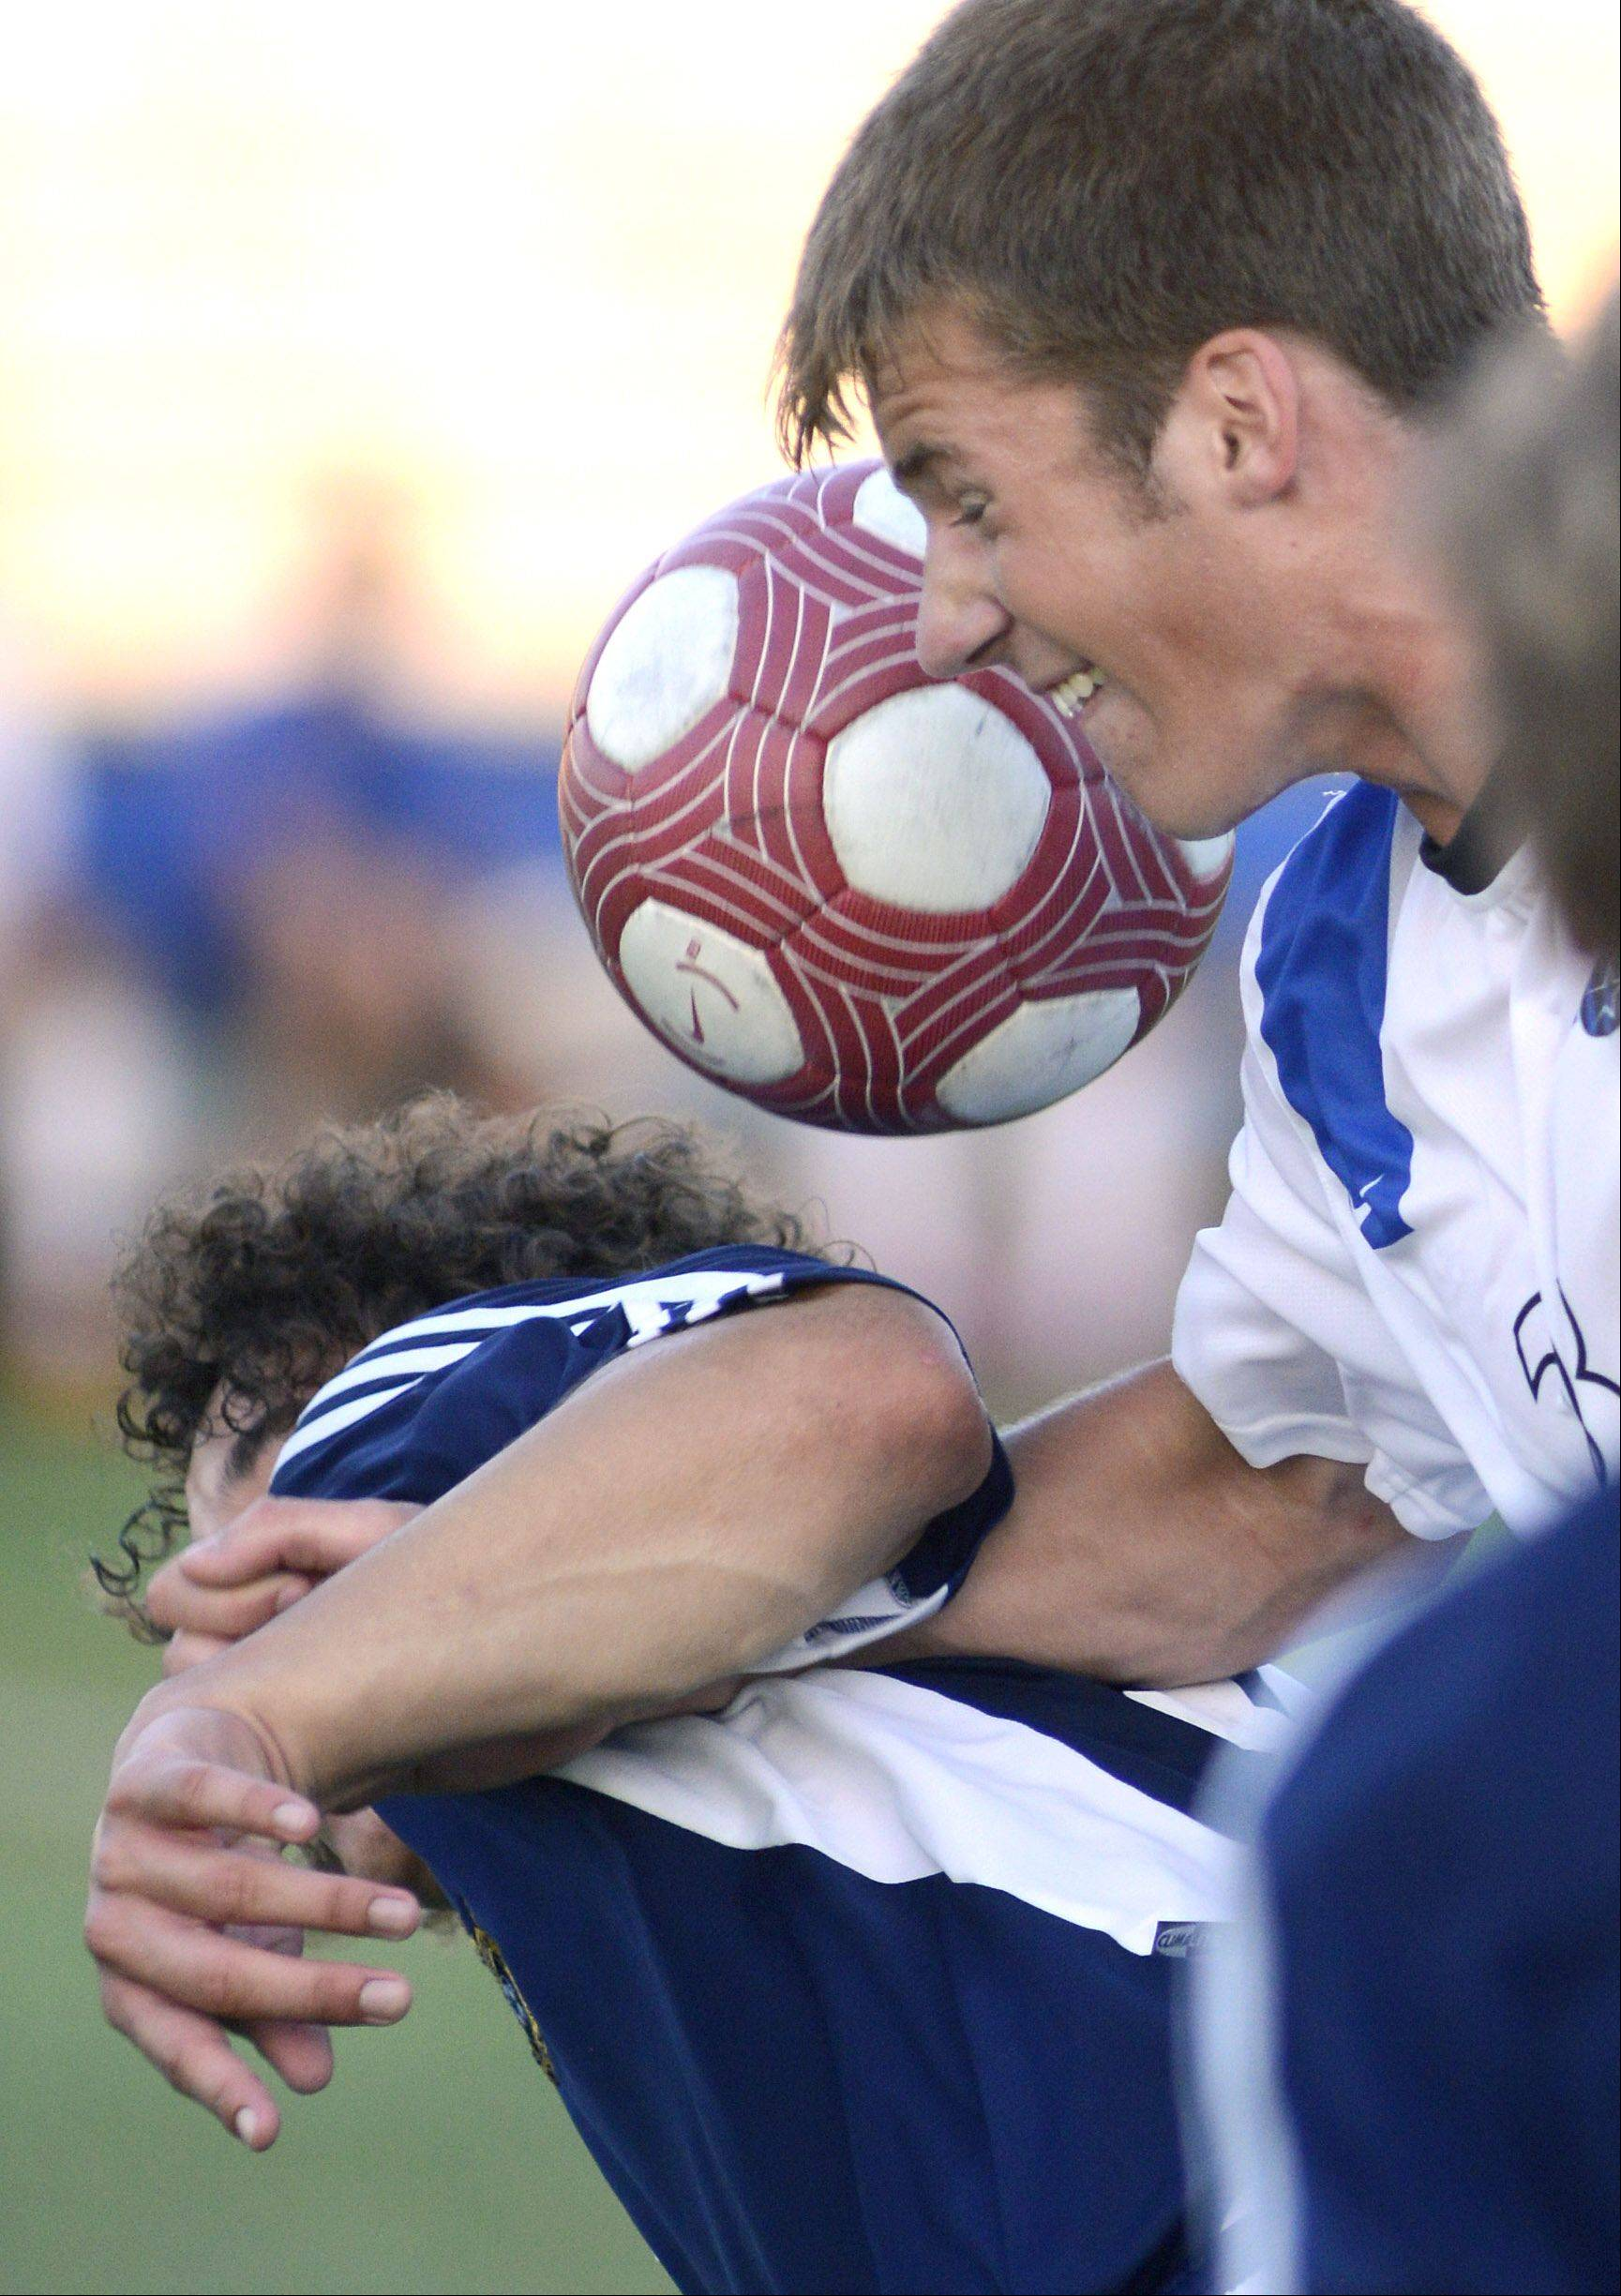 Neuqua Valley's Kersey Dickerson and St. Charles North's Adam Hoffman collide while fighting for the ball in the first half on Tuesday, August 27.